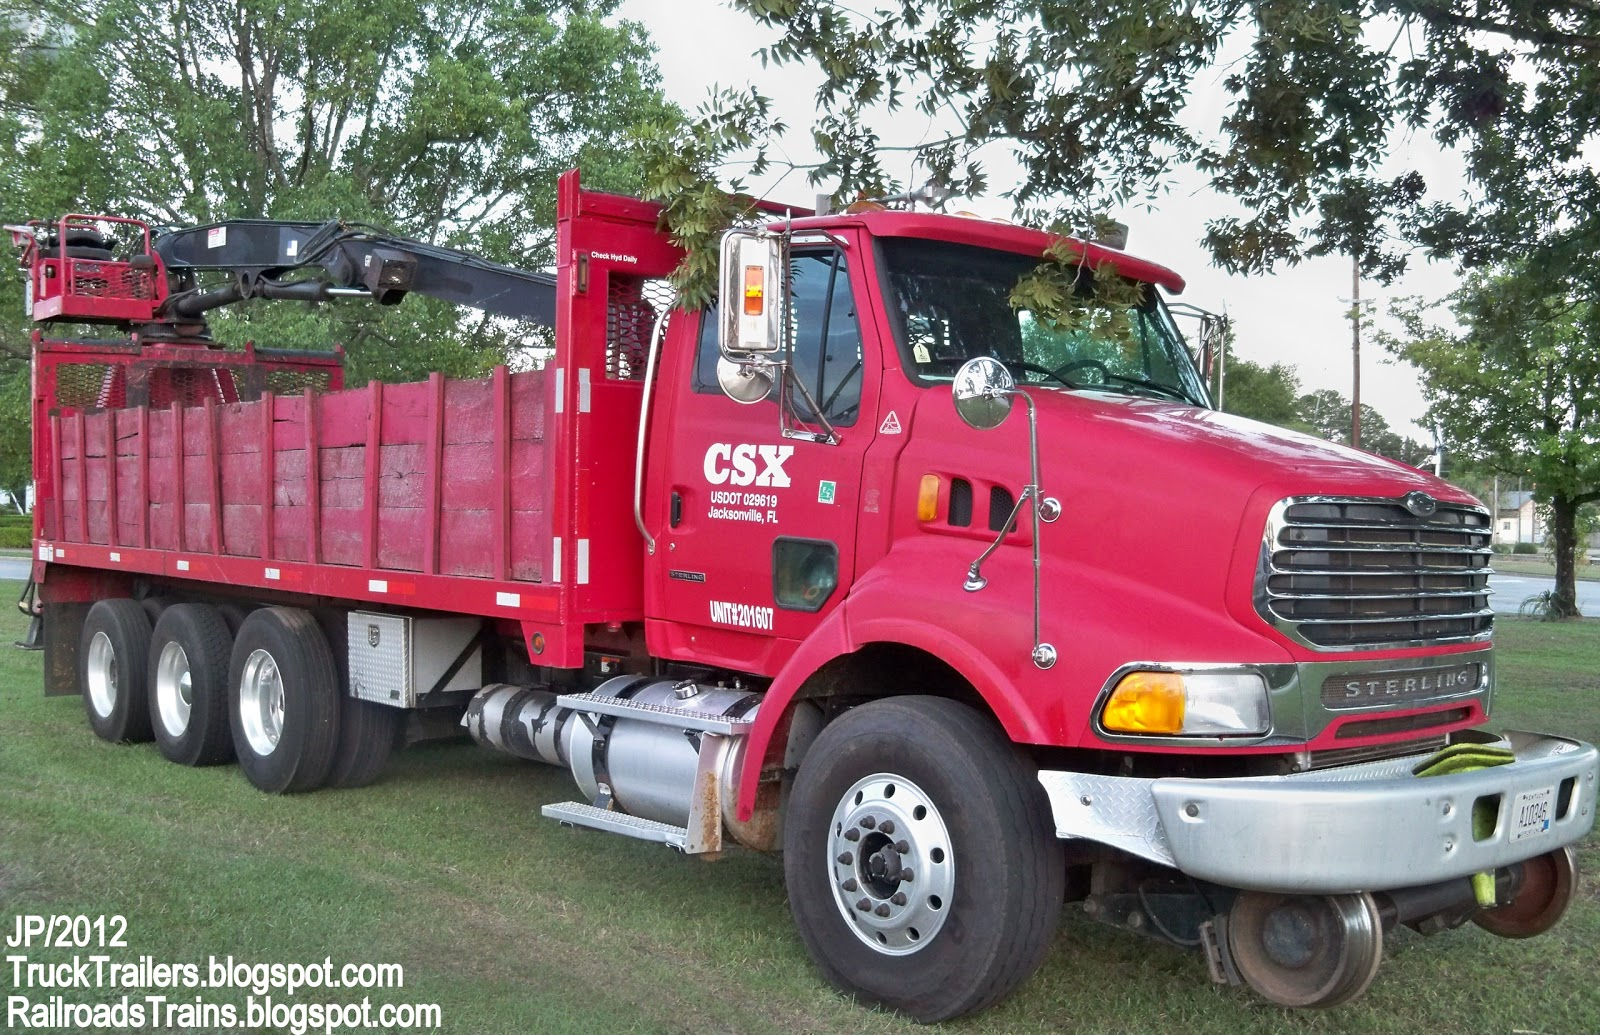 Csx railroad sterling day cab truck heavy duty rail mount crane cross tie truck waycross ga csx transportation railway jacksonville fl us dot 029619